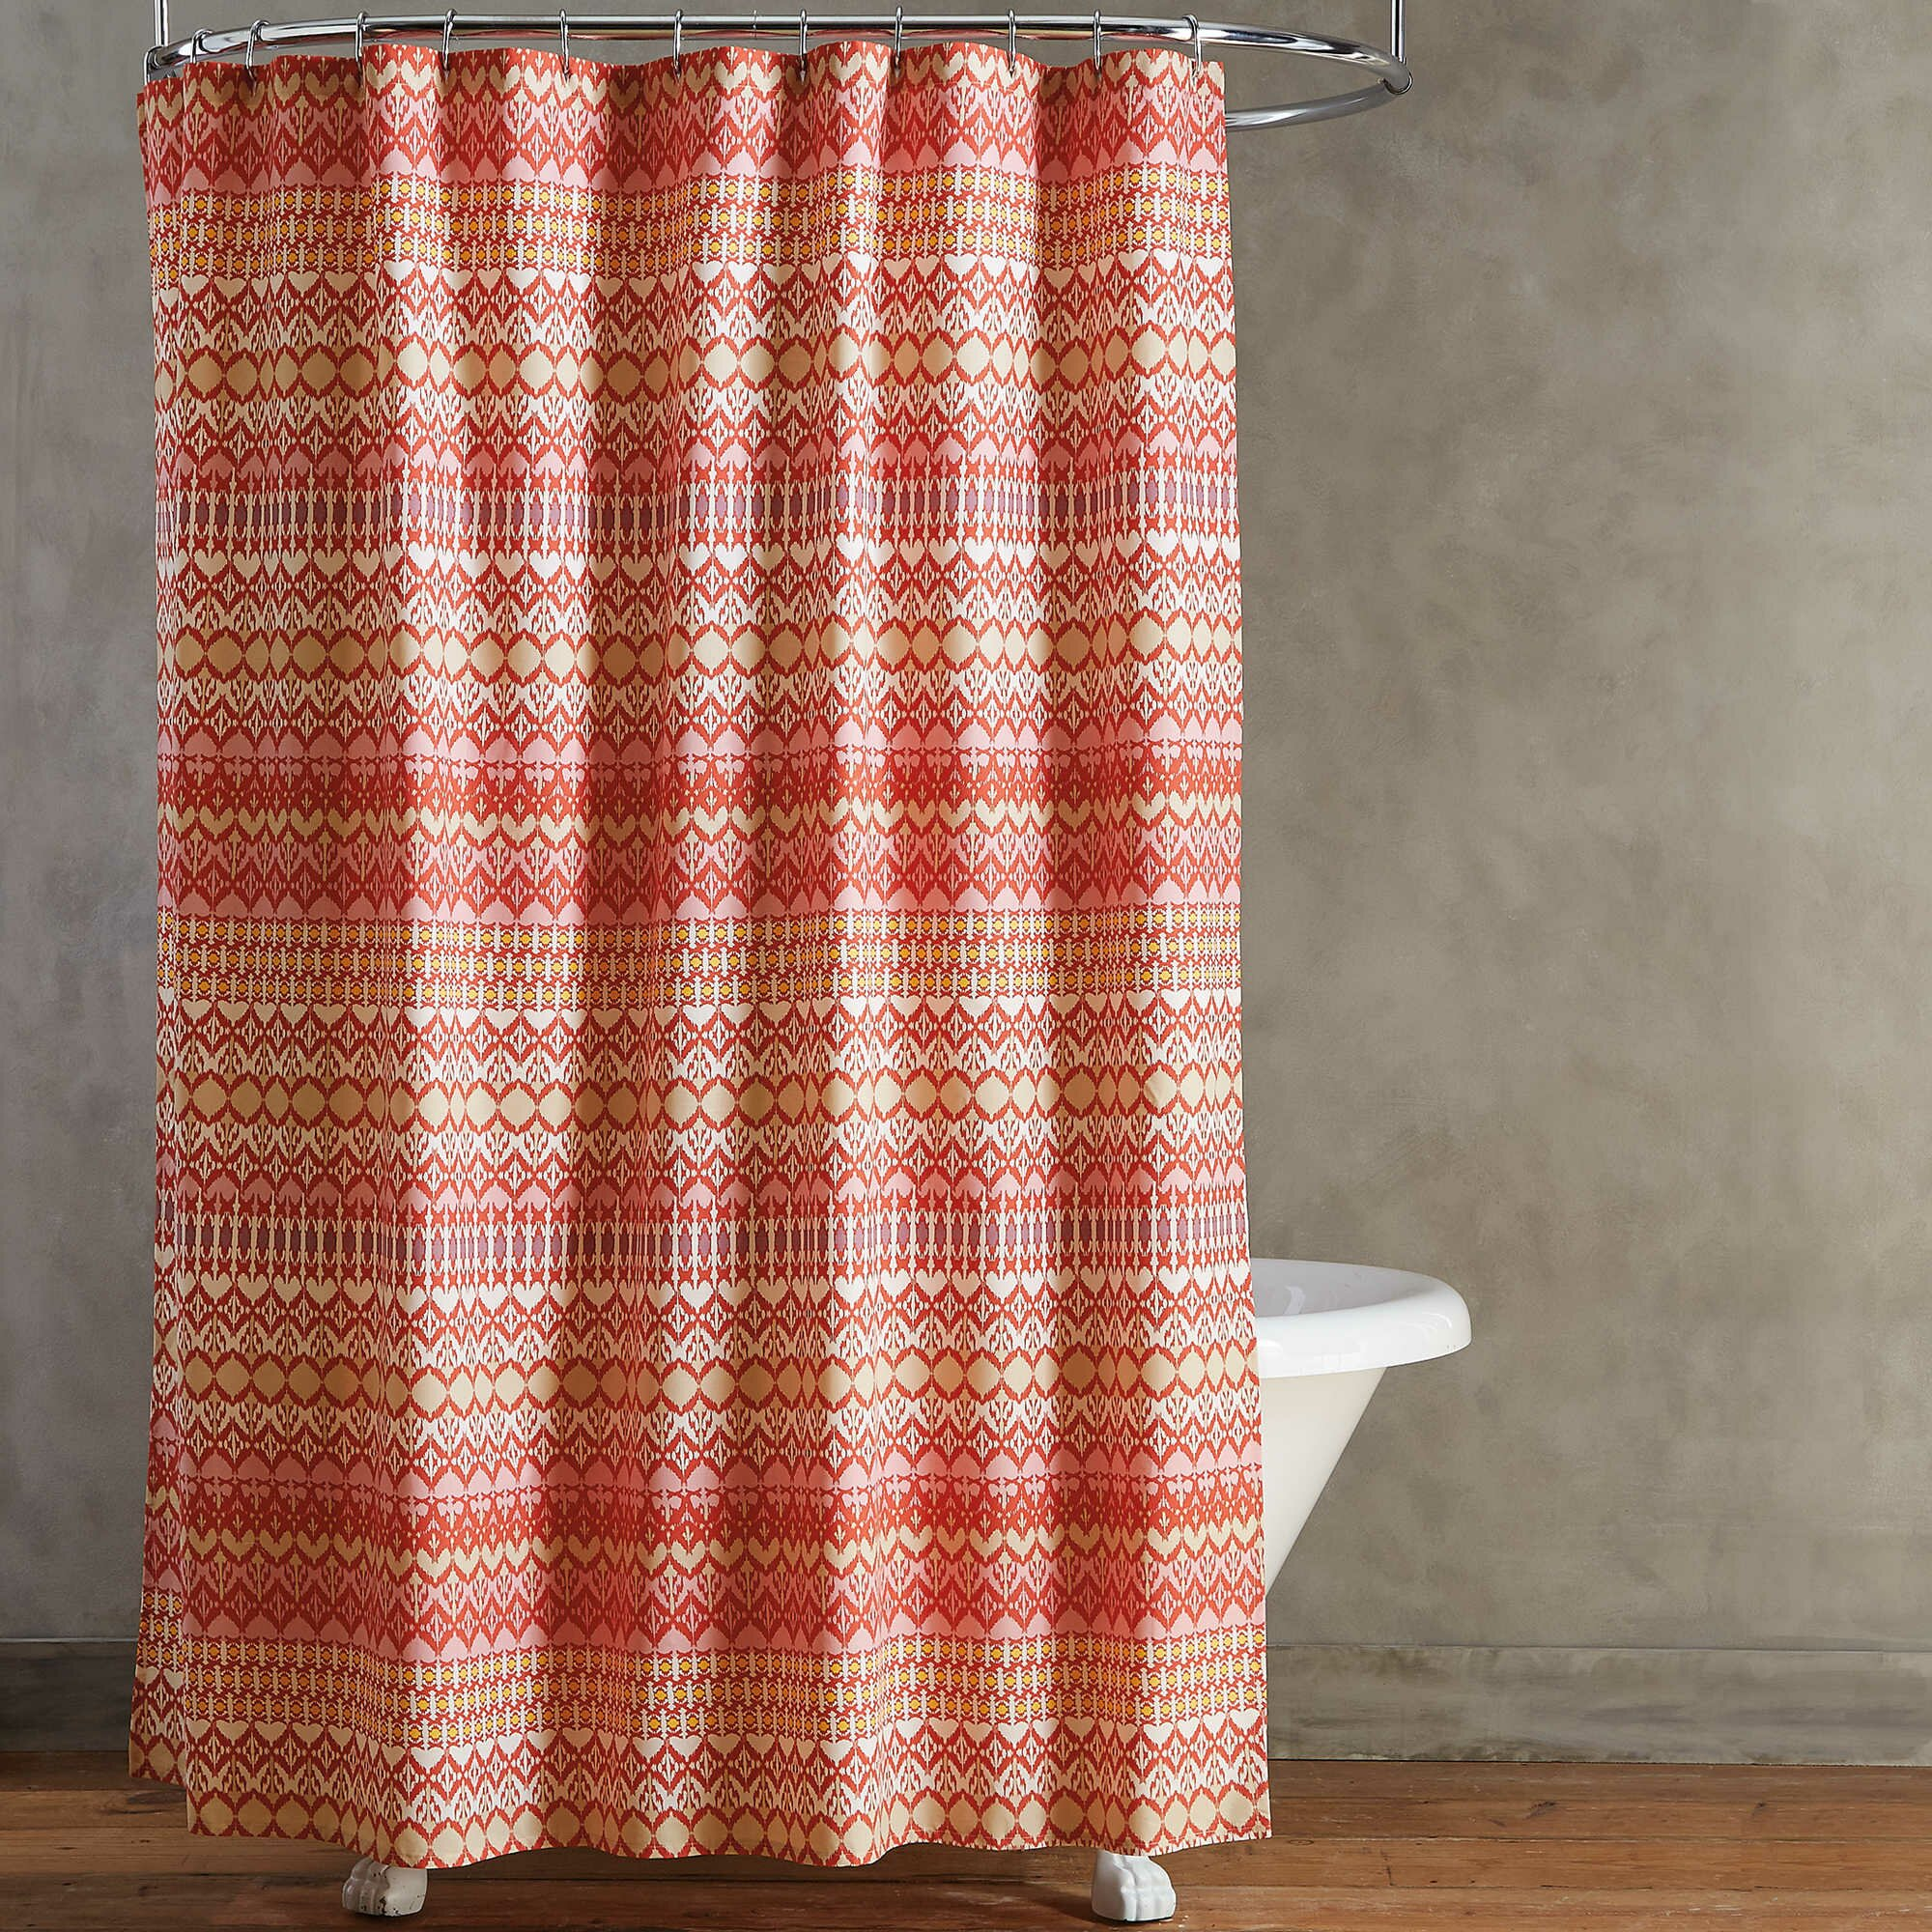 Cheap Cloth Shower Curtains | Shower Curtain Walmart | Walmart Shower Curtain